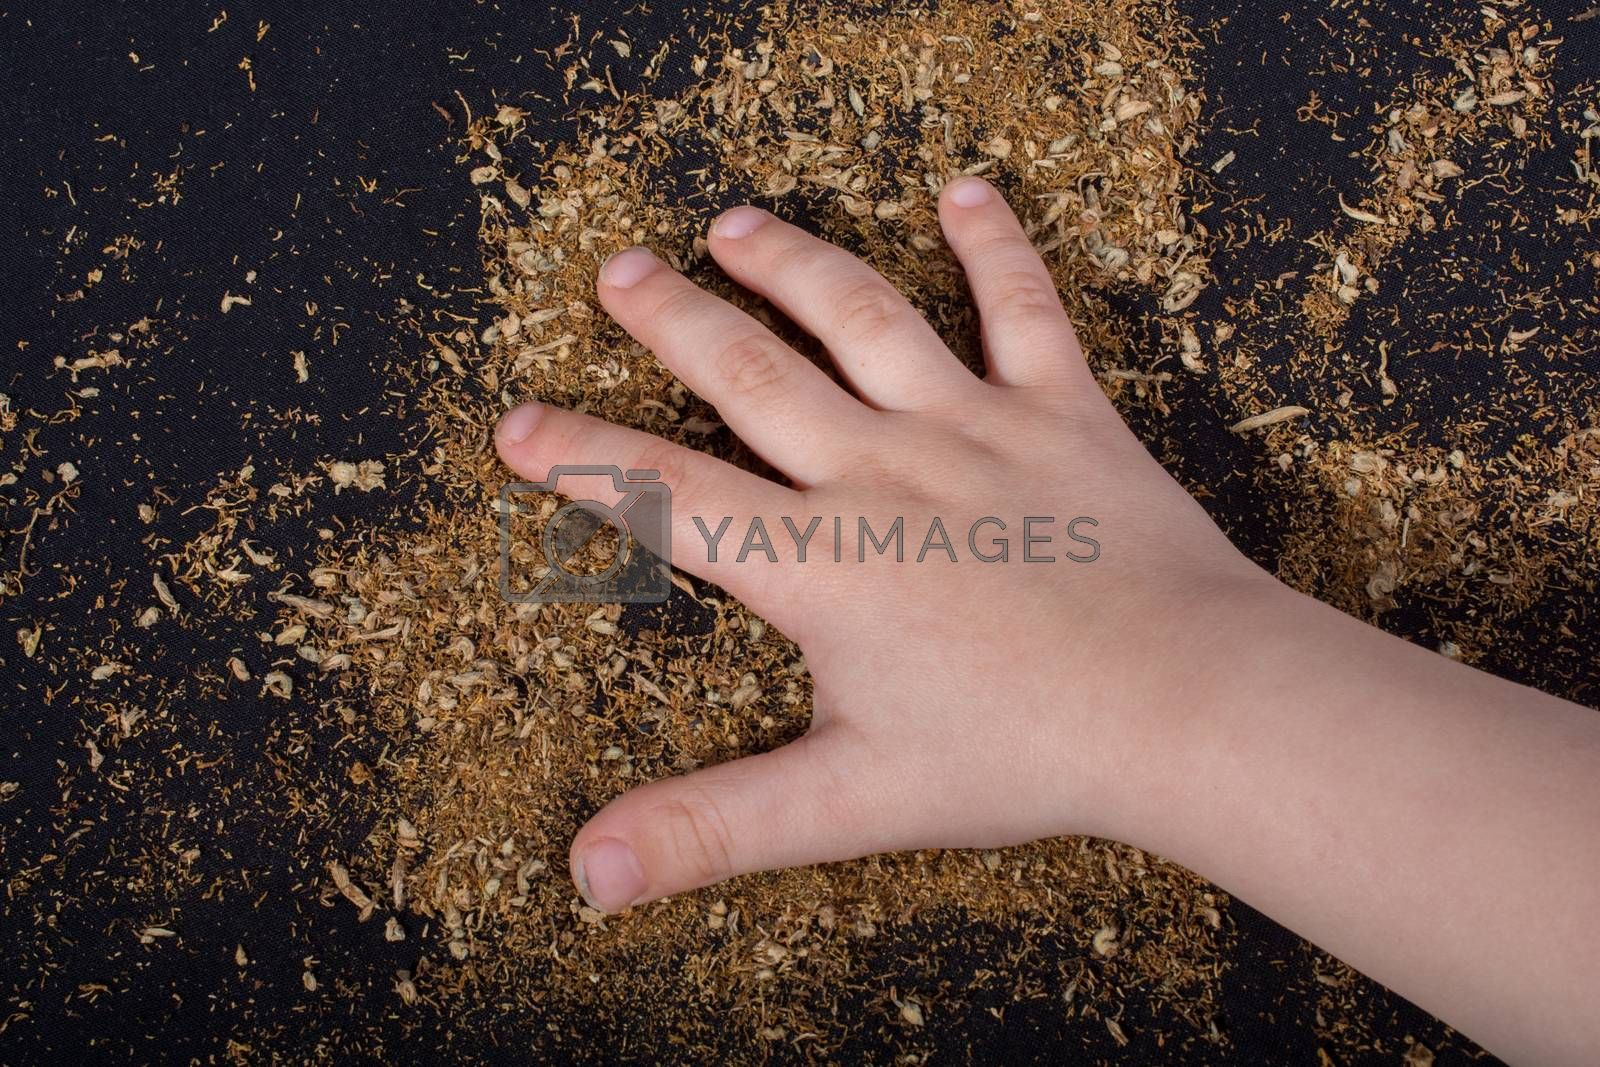 Toddlers hand on tobacco on black ground